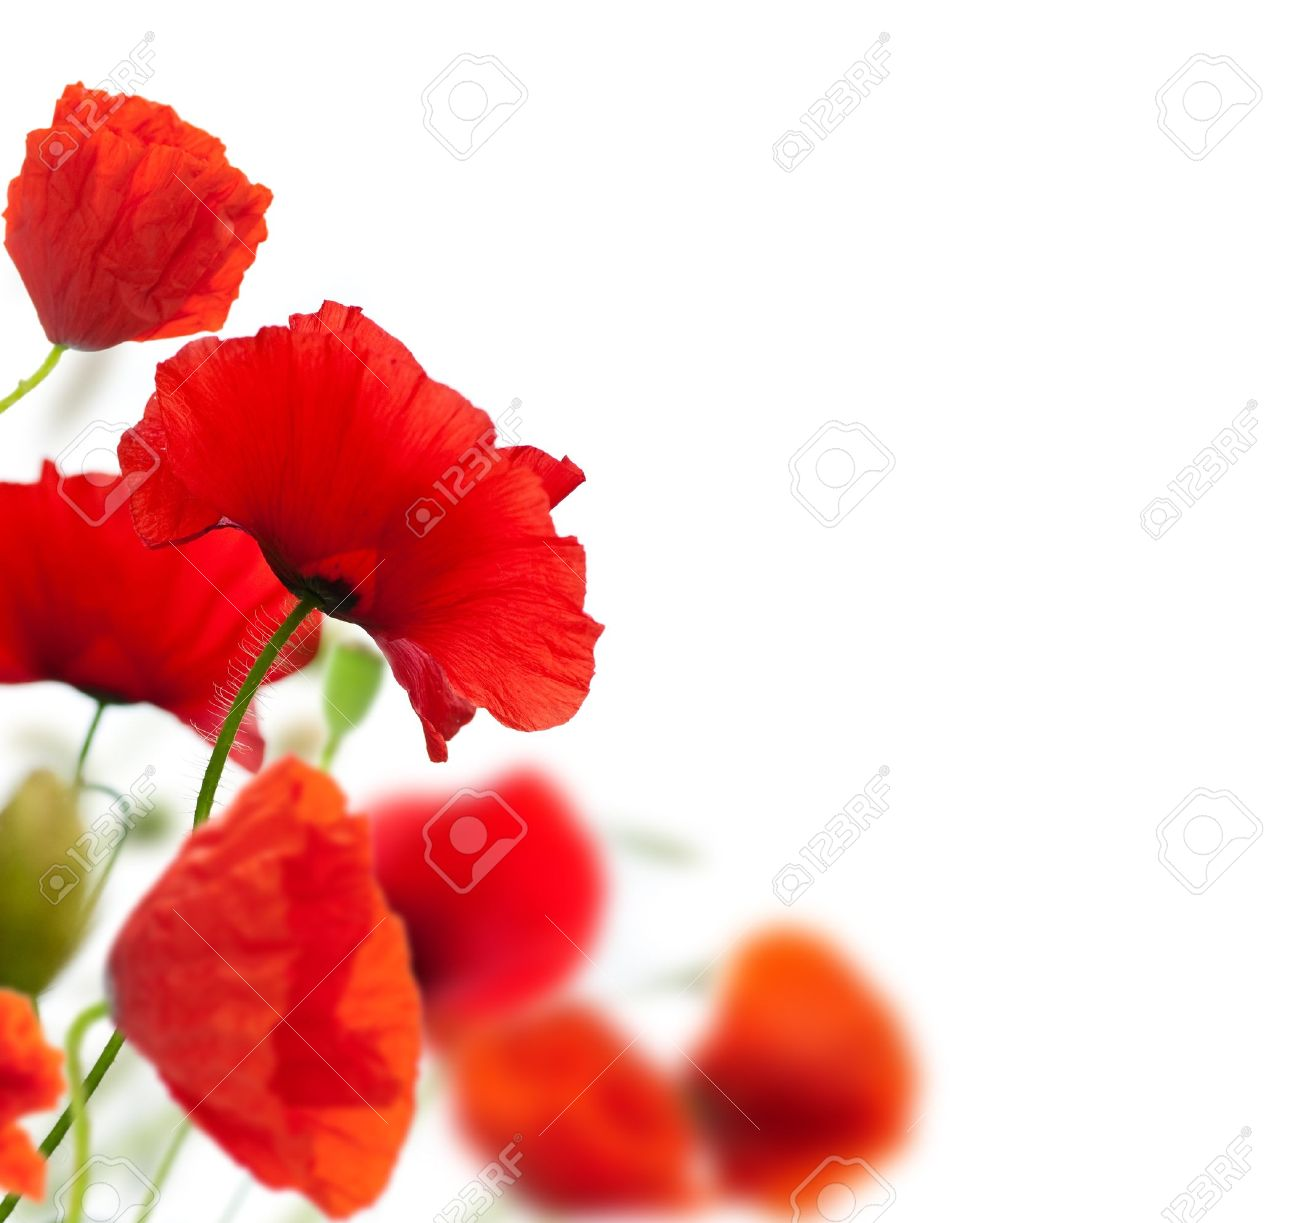 summer scene many red poppies isolated over a white background